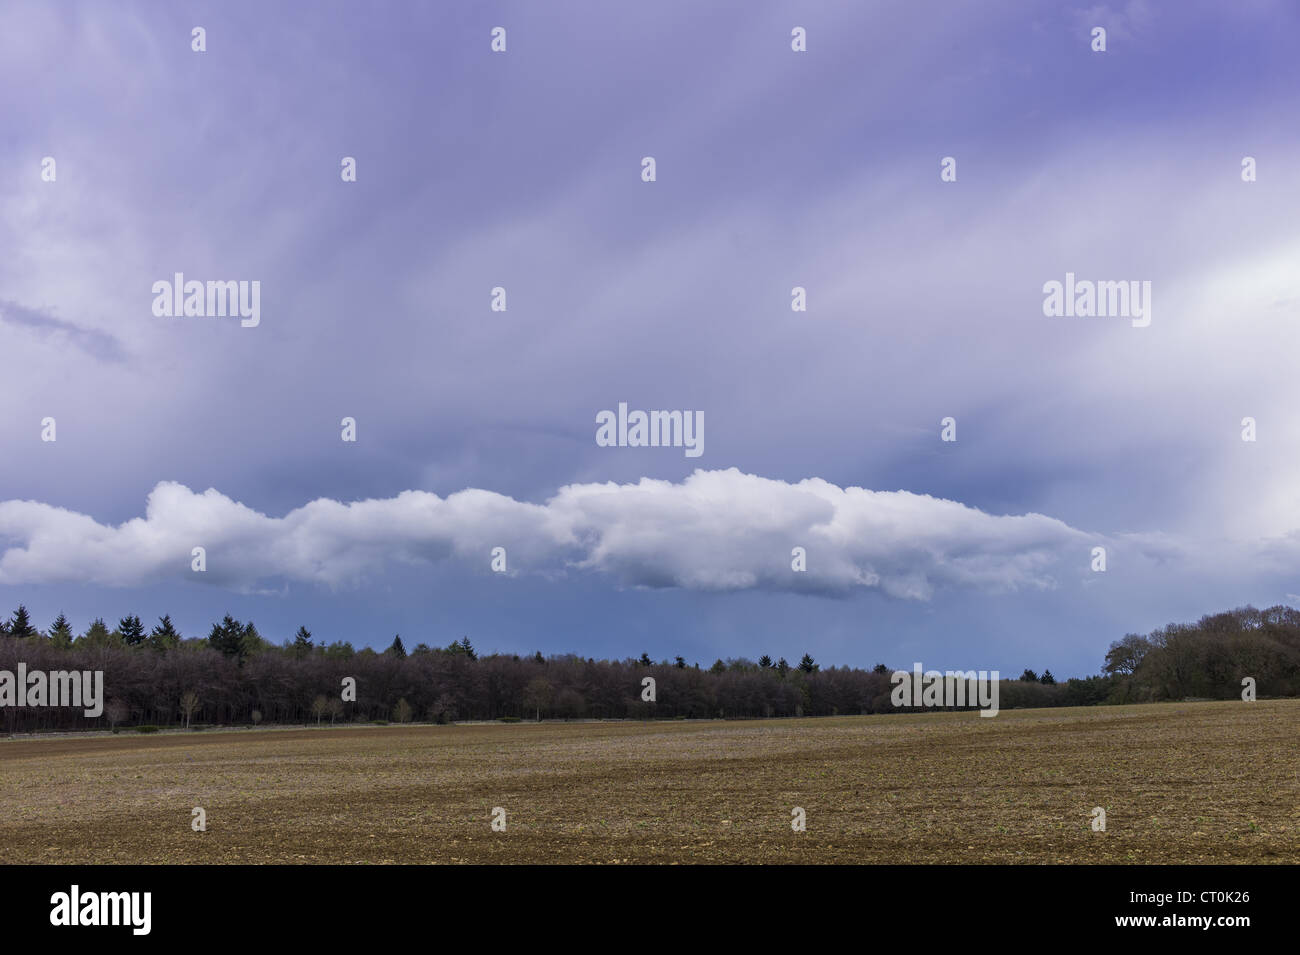 Cloud formation Stratocumulus above trees with Cirrus high above in springtime in Swinbrook in the Cotswolds, Oxfordshire, - Stock Image